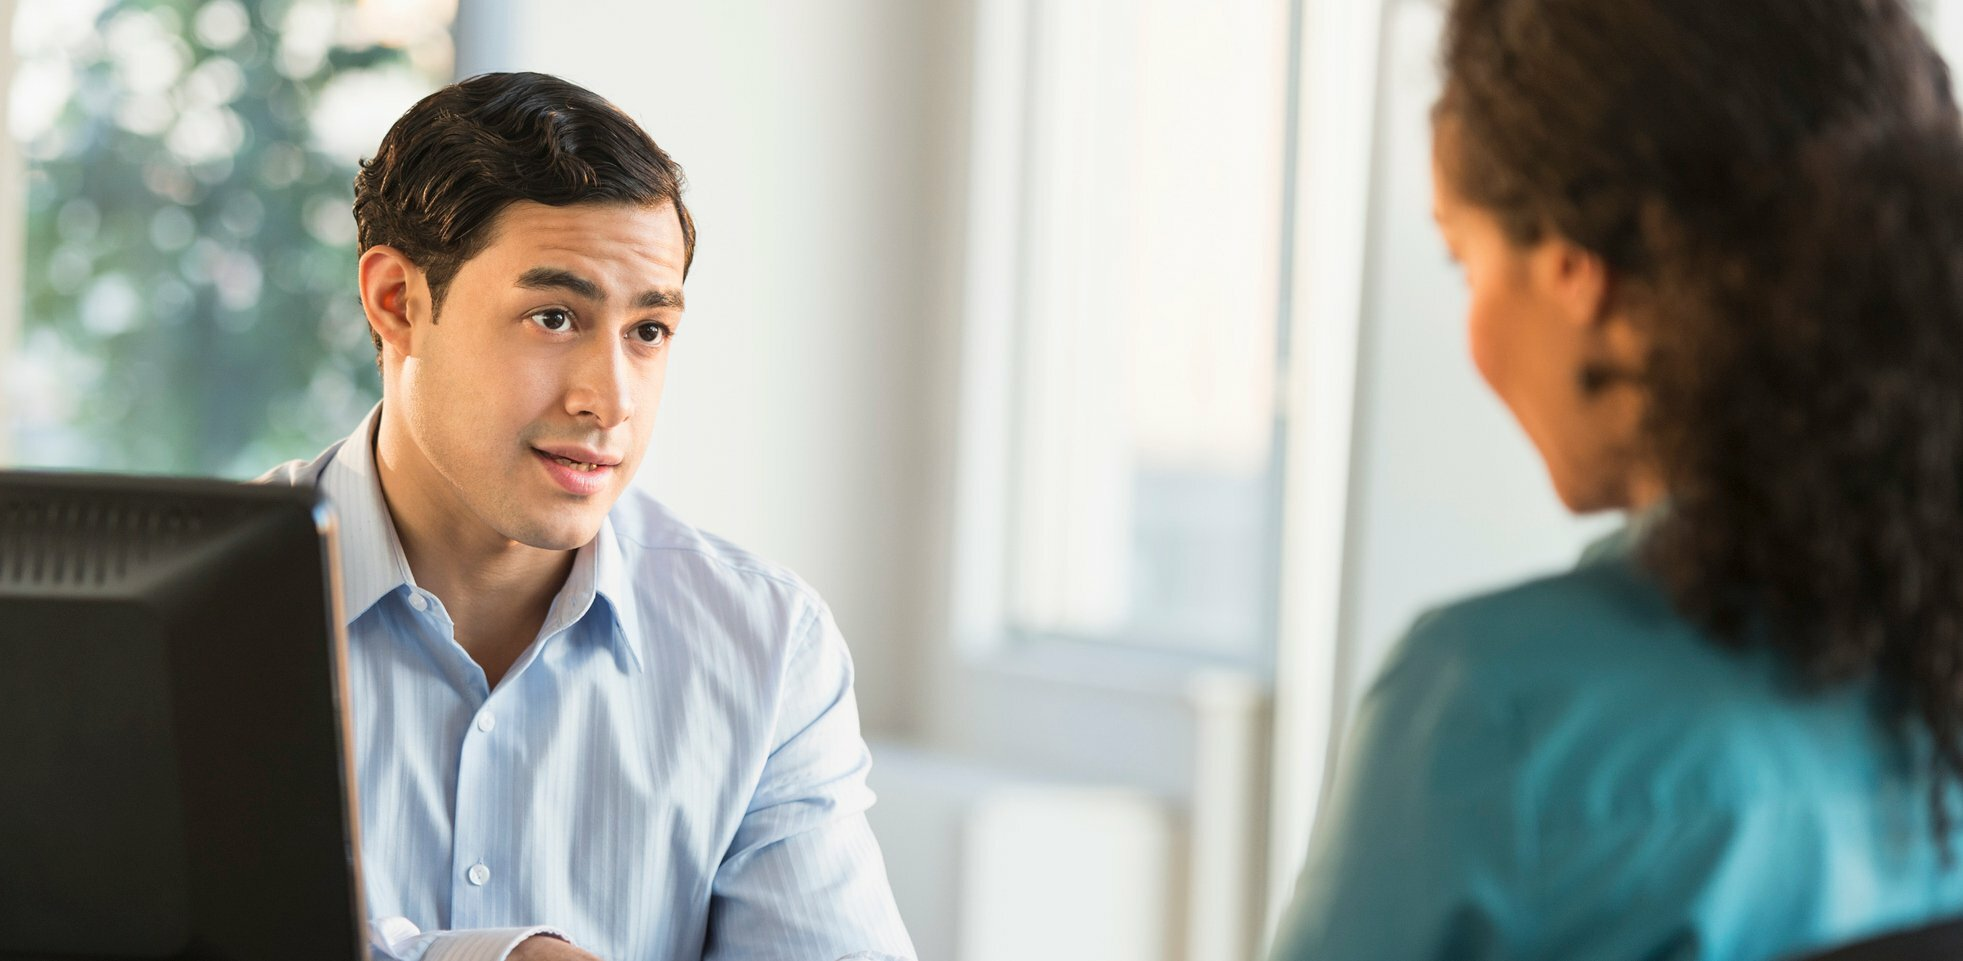 5 Common Interview Responses That Can Be Interpreted Two Different Ways